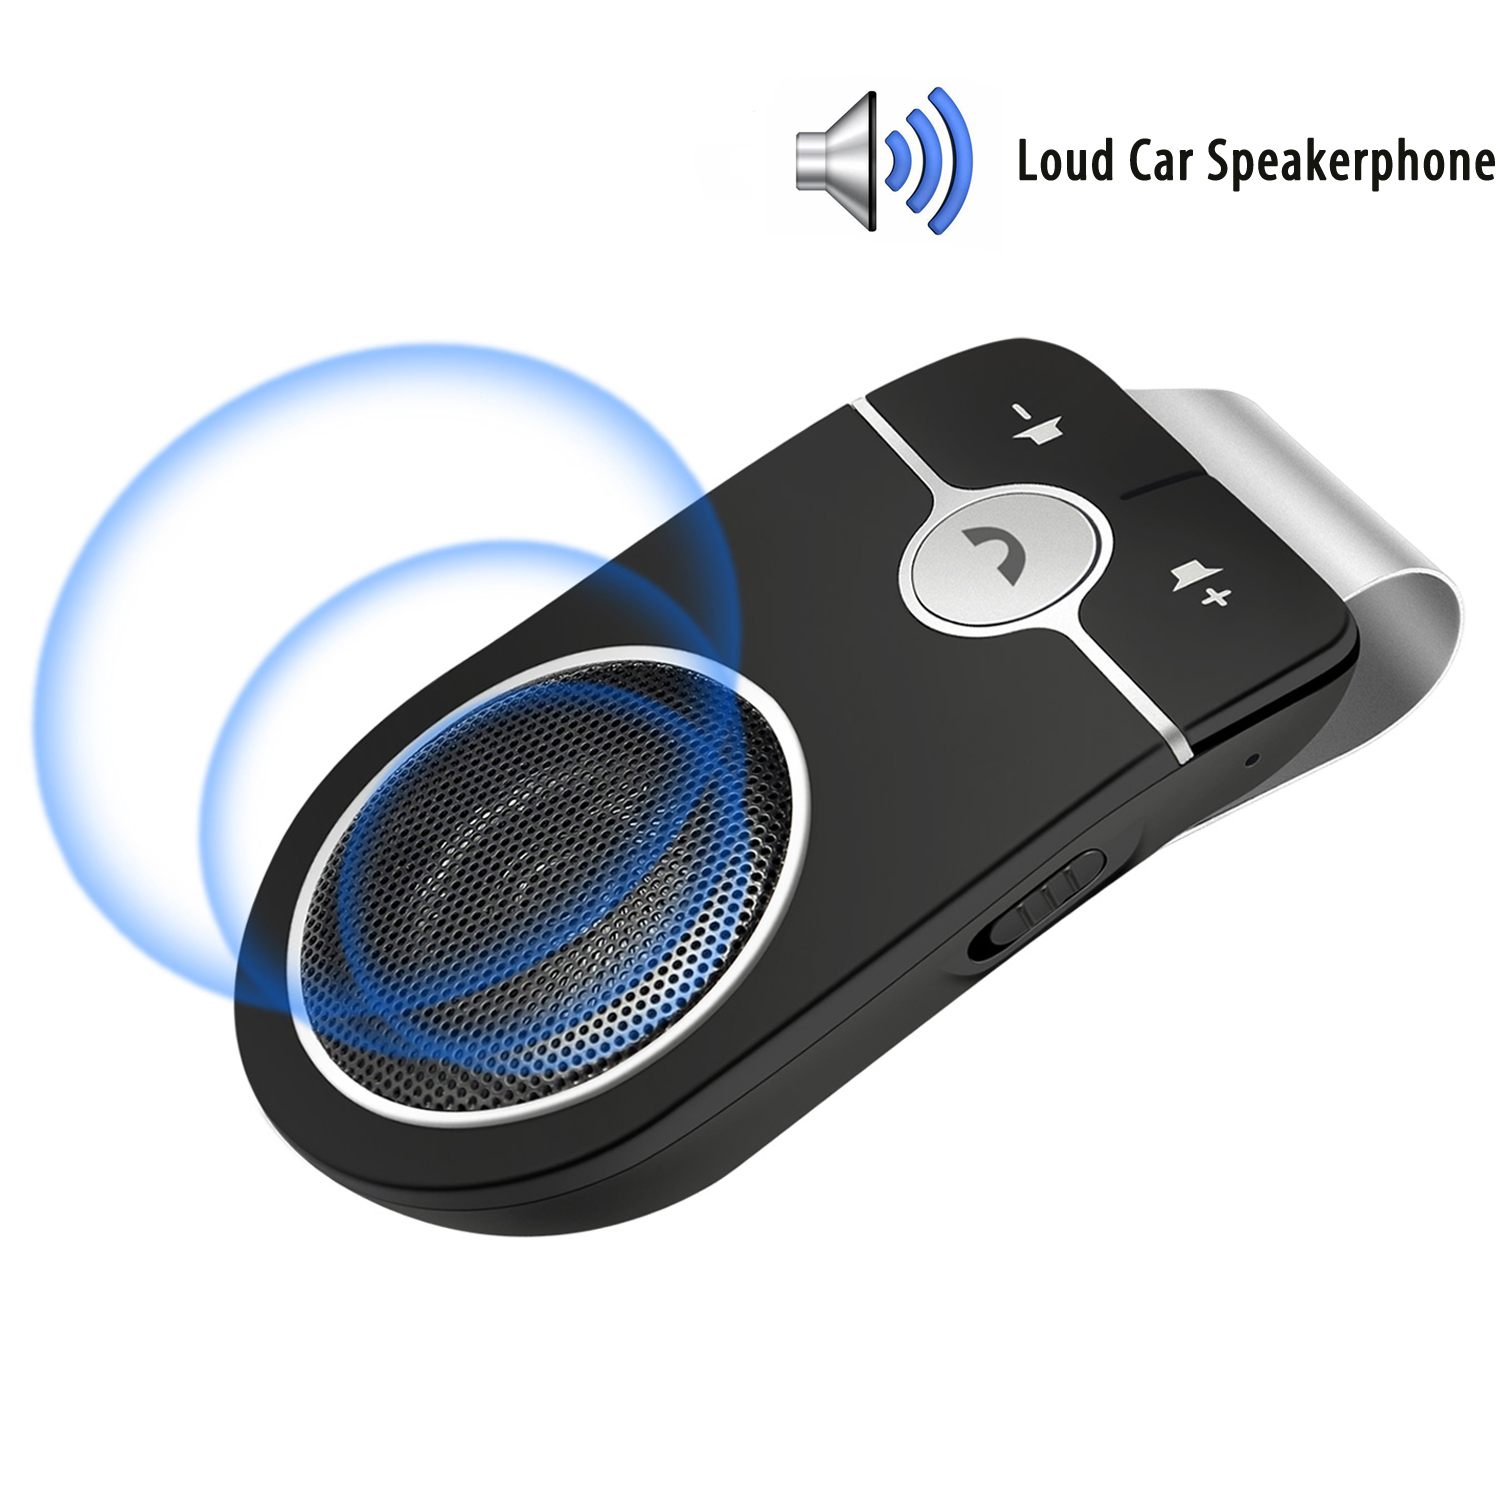 <strong>Car</strong> speaker multipoint speakerphone manos libres <strong>bluetooth</strong> para celular dsp technology <strong>Bluetooth</strong> handsfree <strong>car</strong> kit with Siri